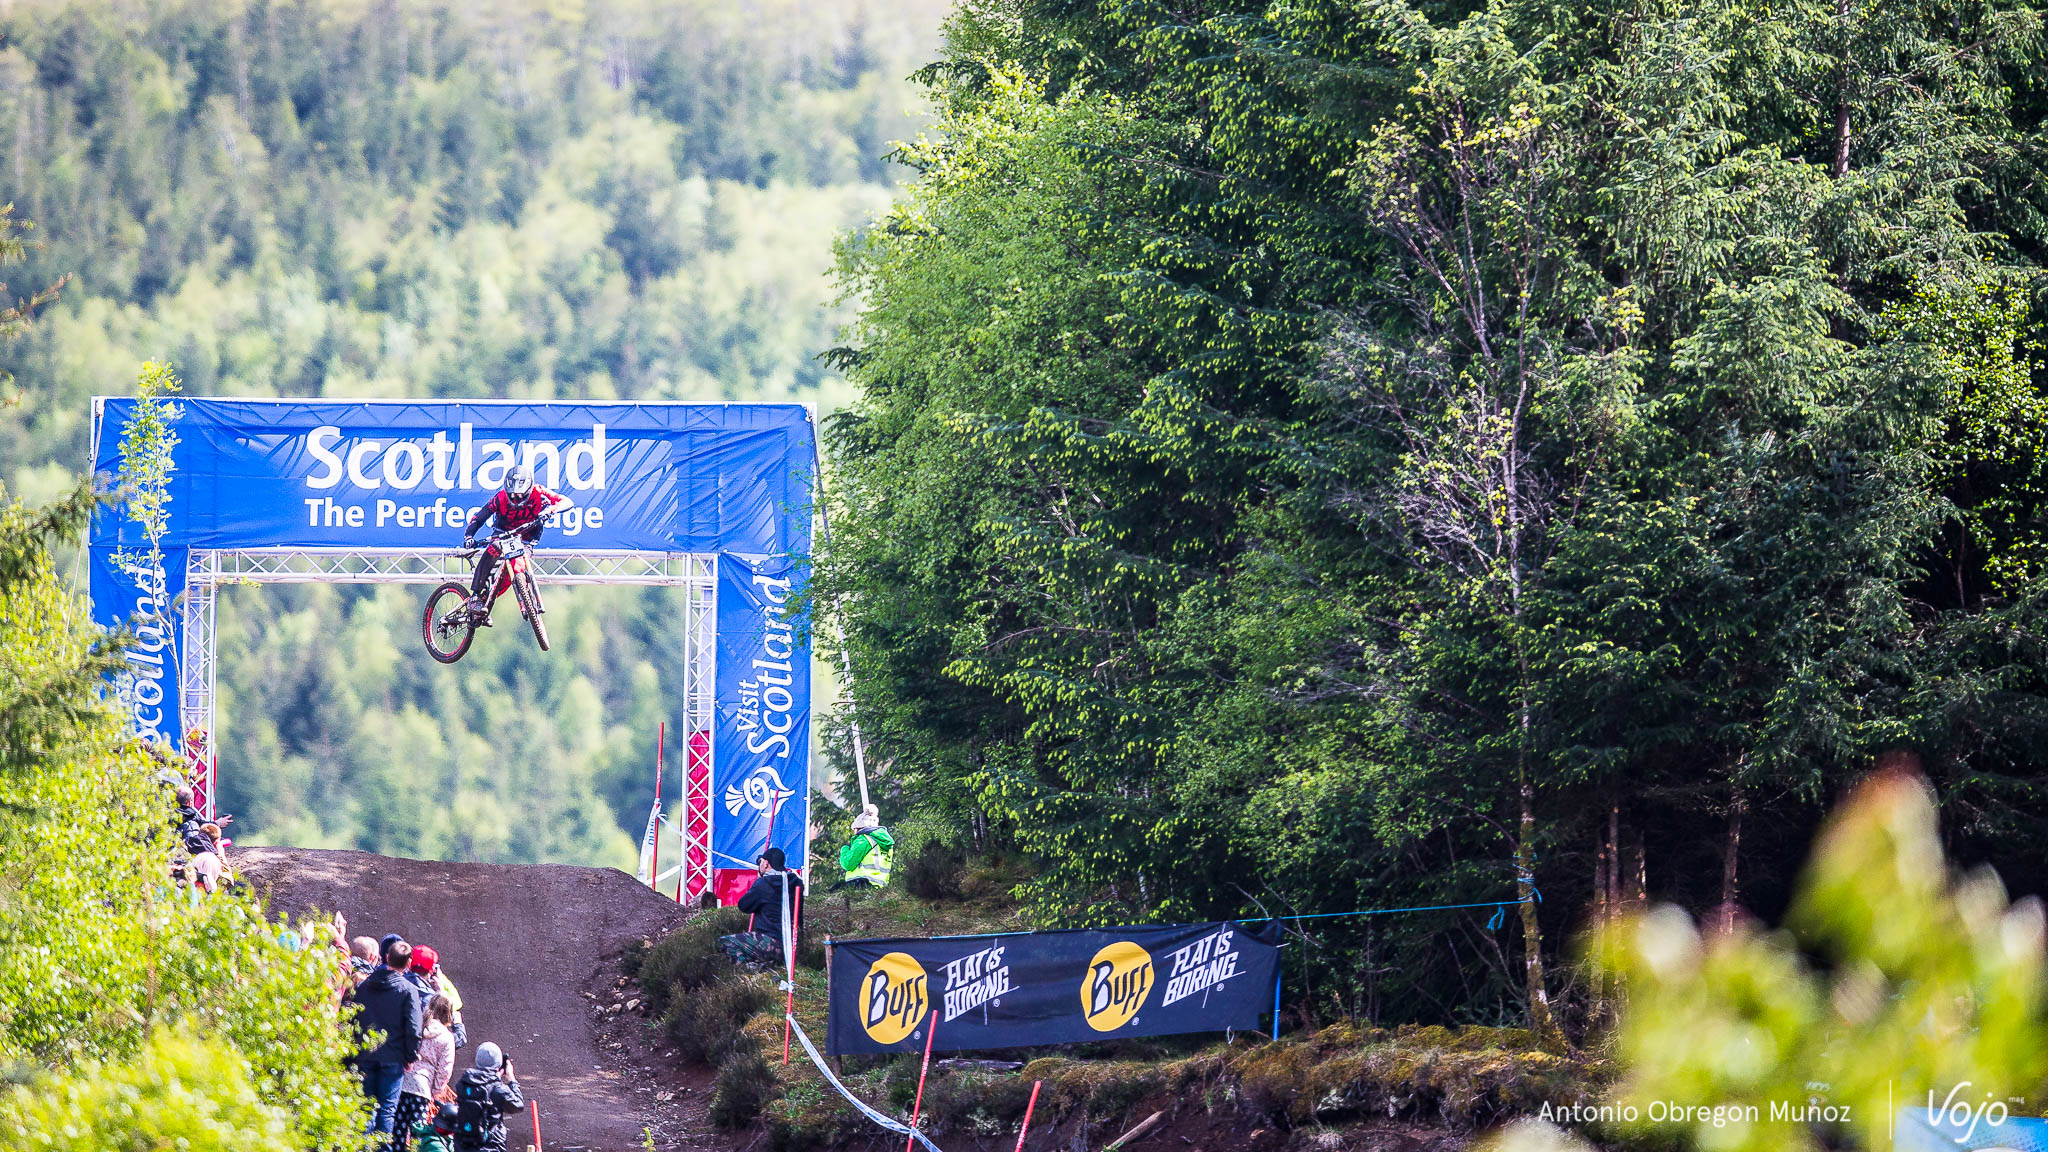 Fort_William_UCI_World_Cup_DH_2015_(finals_Hommes)_(JoshBryceland)_Copyright_Antonio_Obregon_VojoMag-8